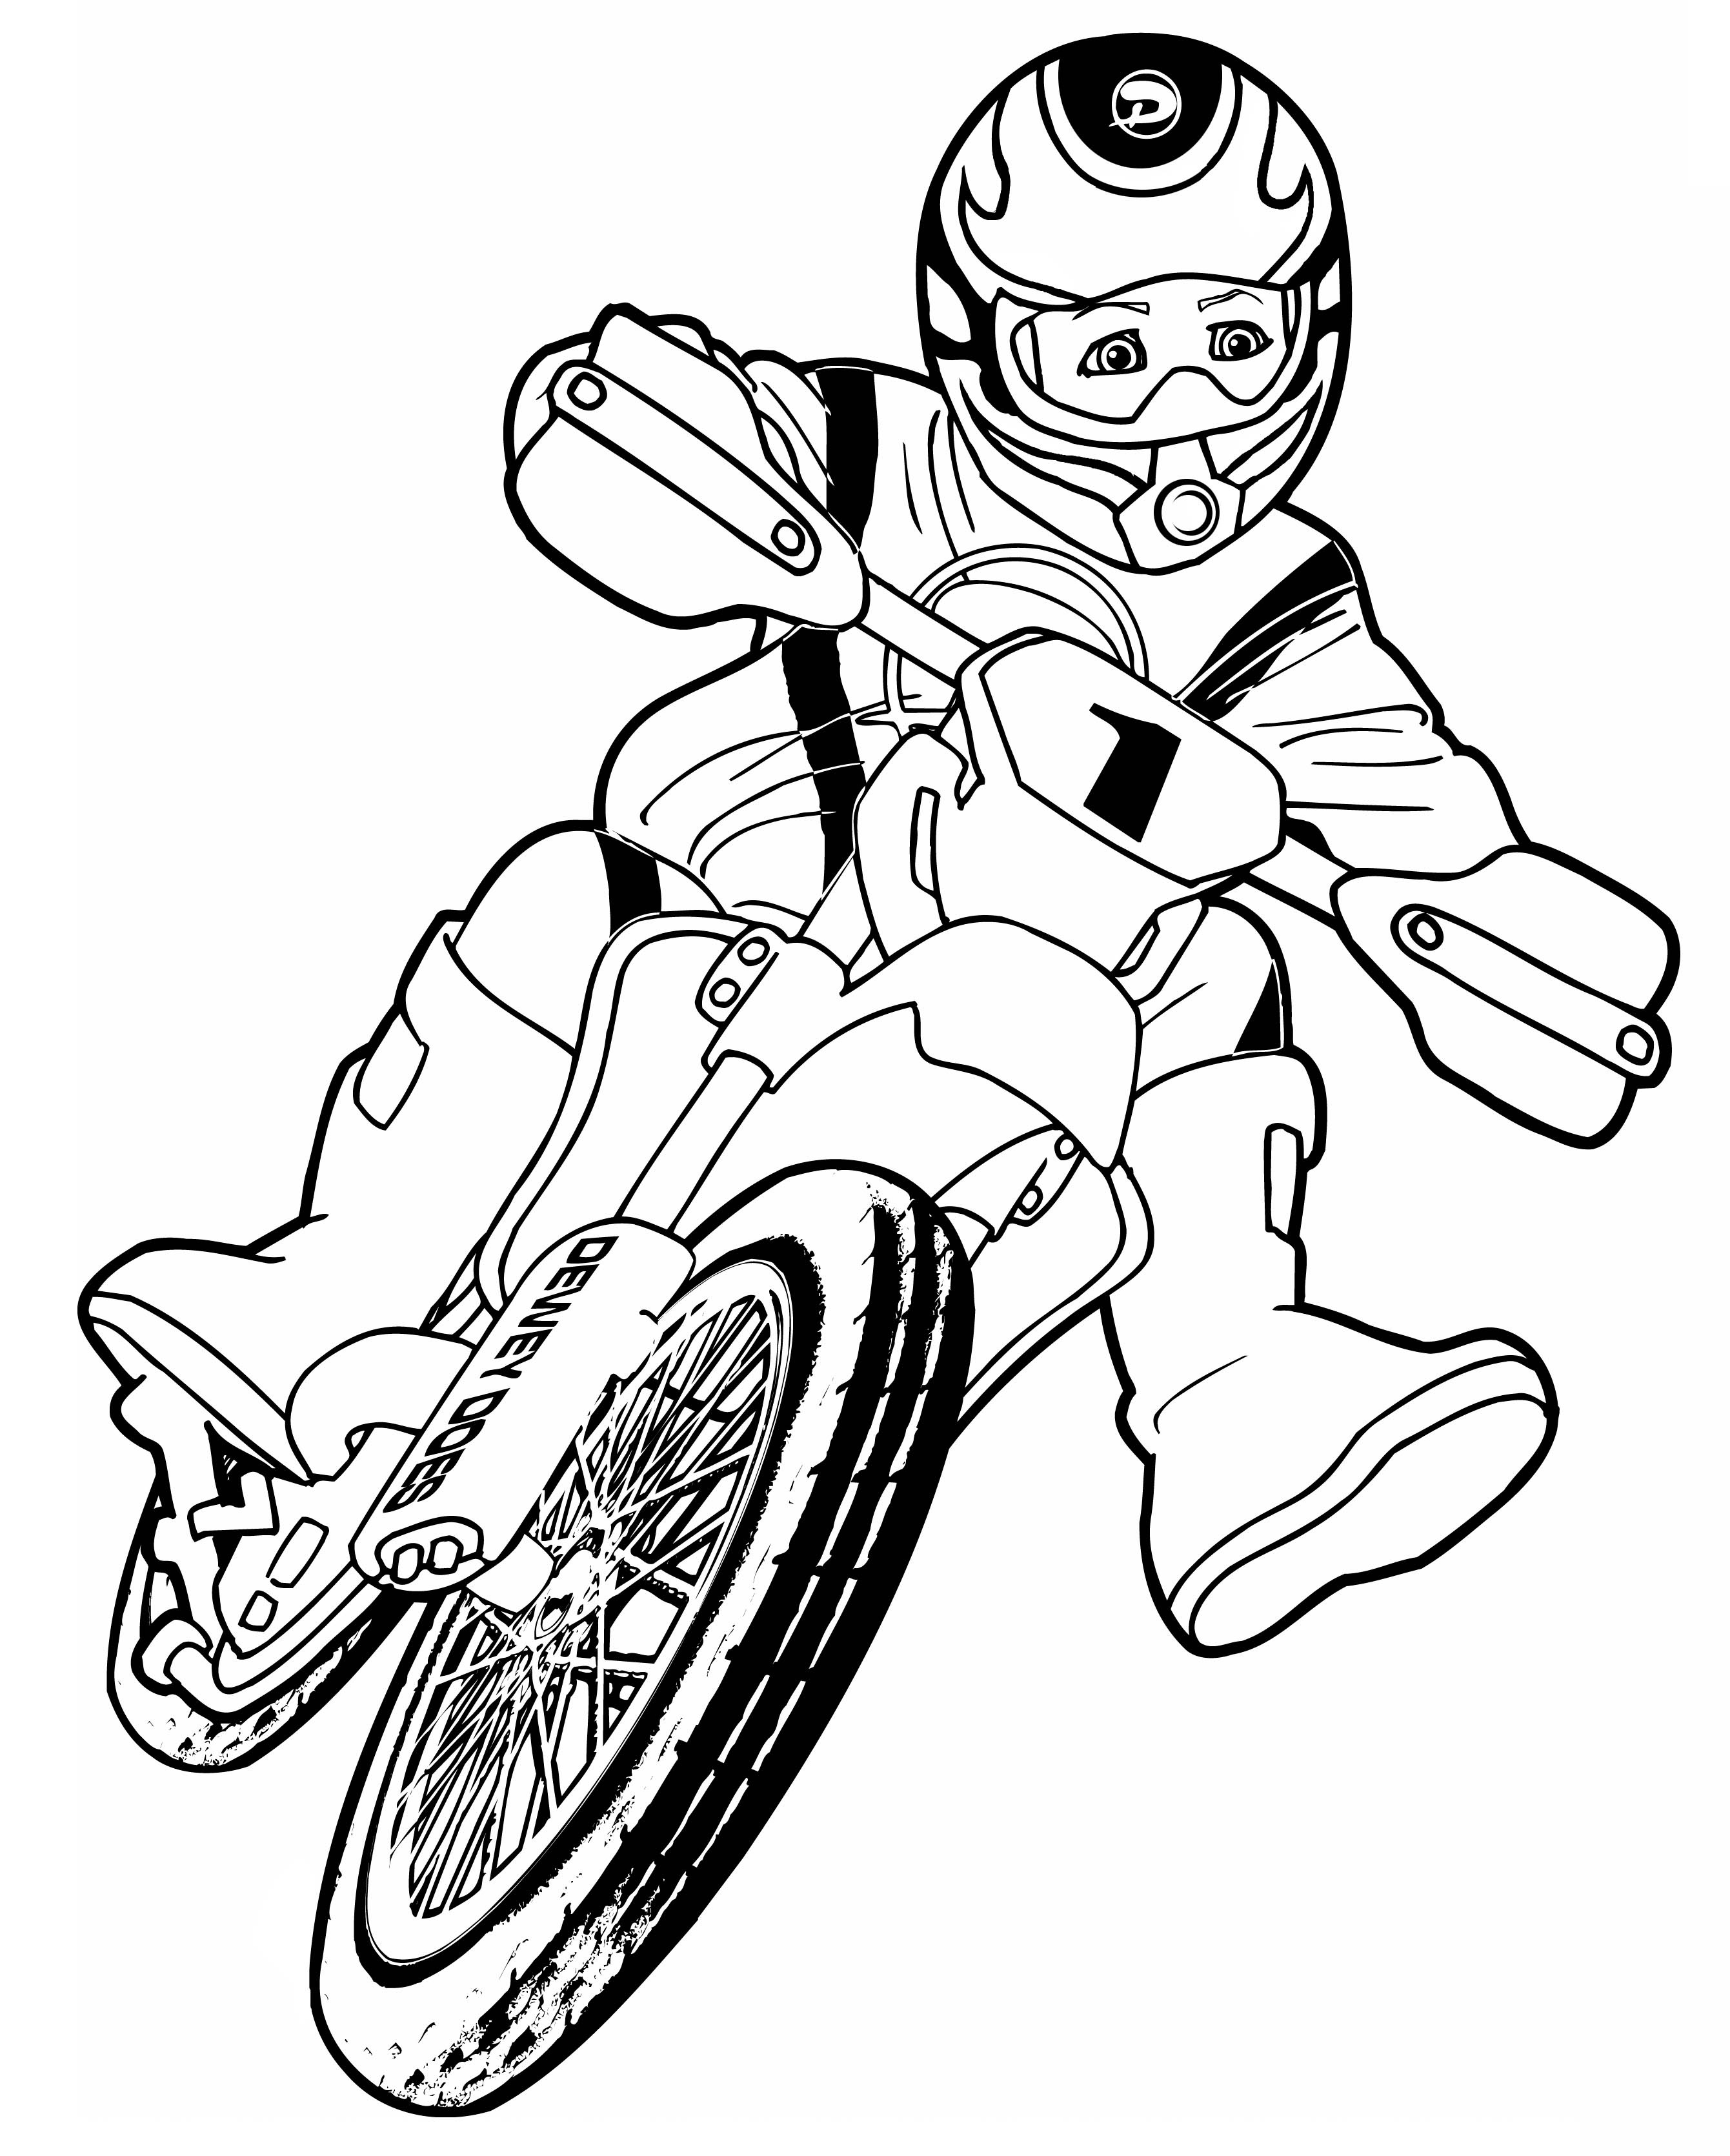 Free How To Draw A Bike For Kids, Download Free Clip Art